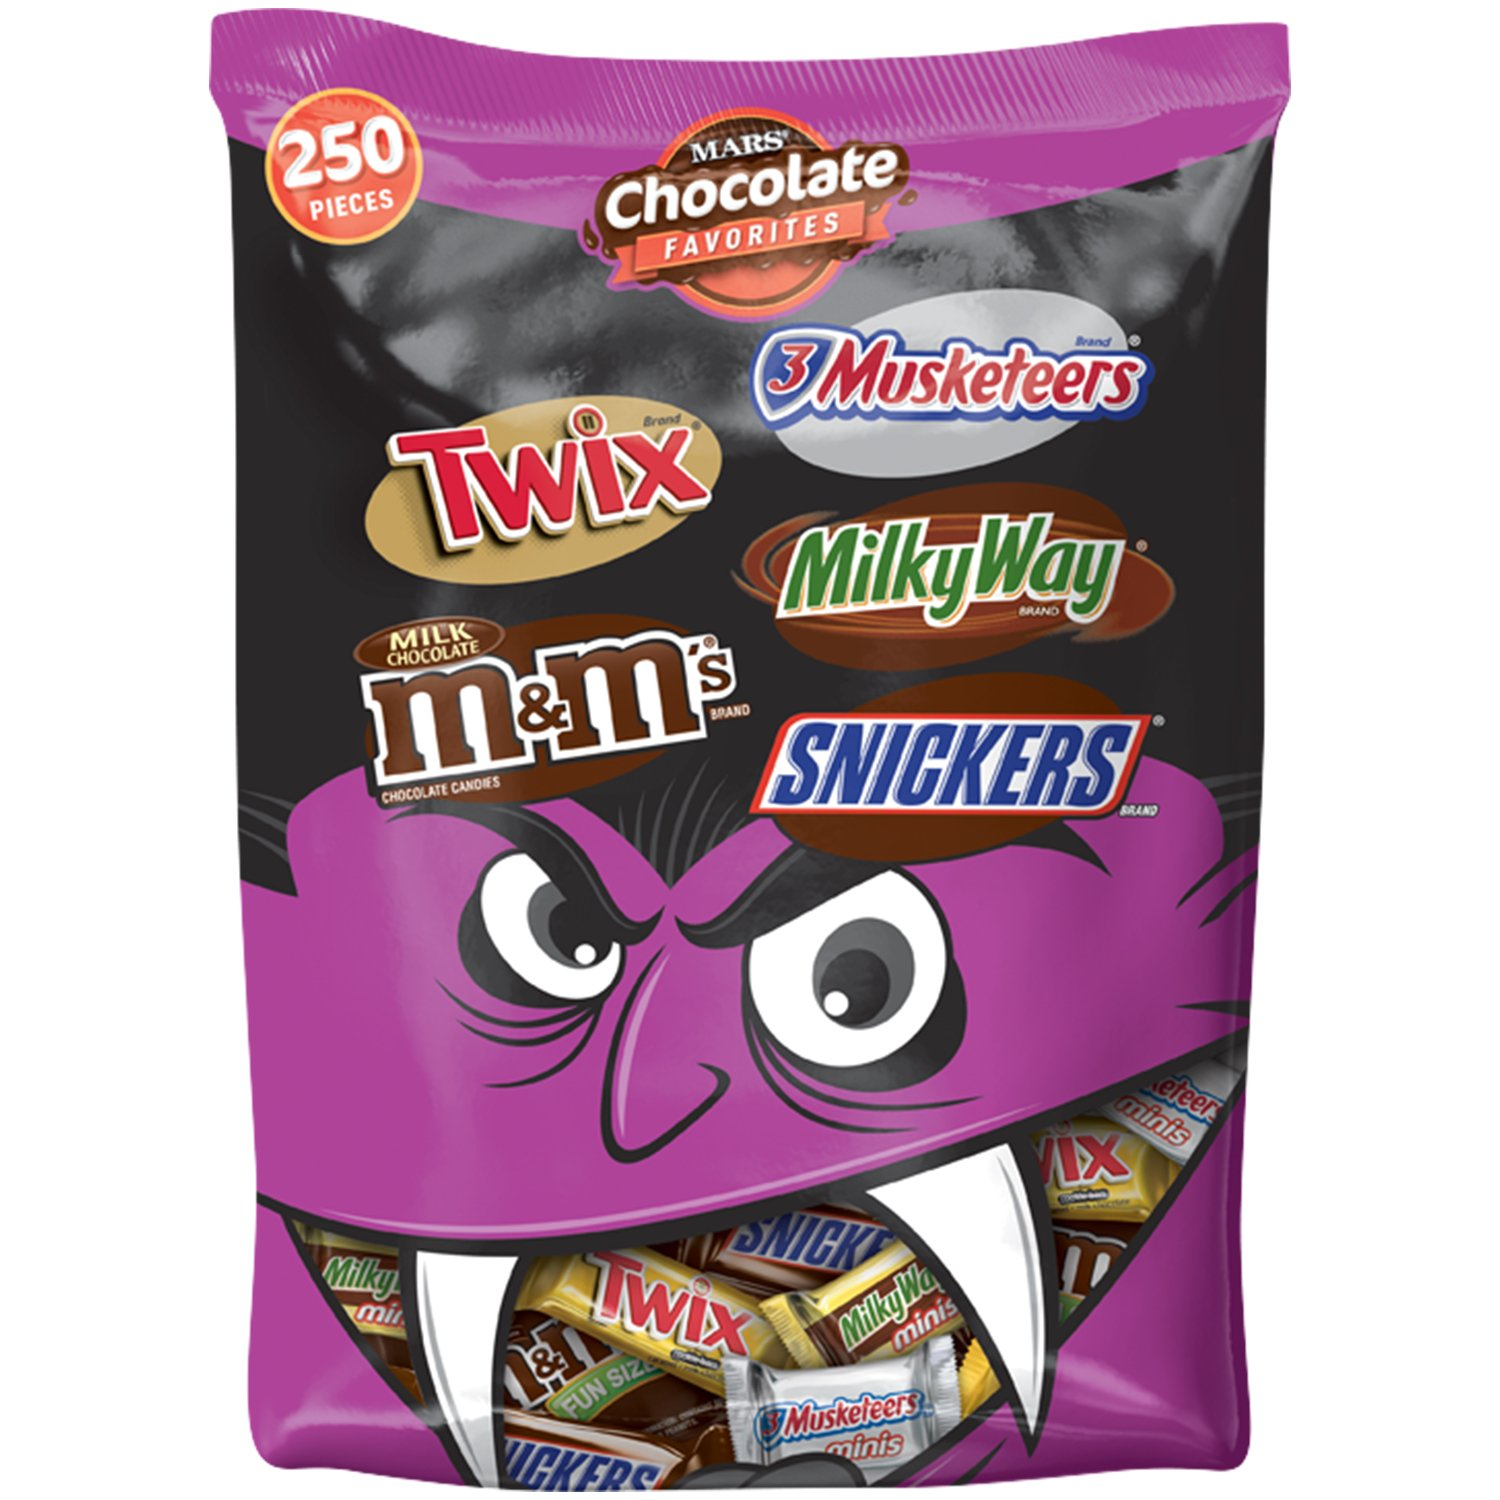 MARS Chocolate Favorites Candy Bars Variety Mix 96.2-Ounce 250-Piece Bag by Mars (Image #1)